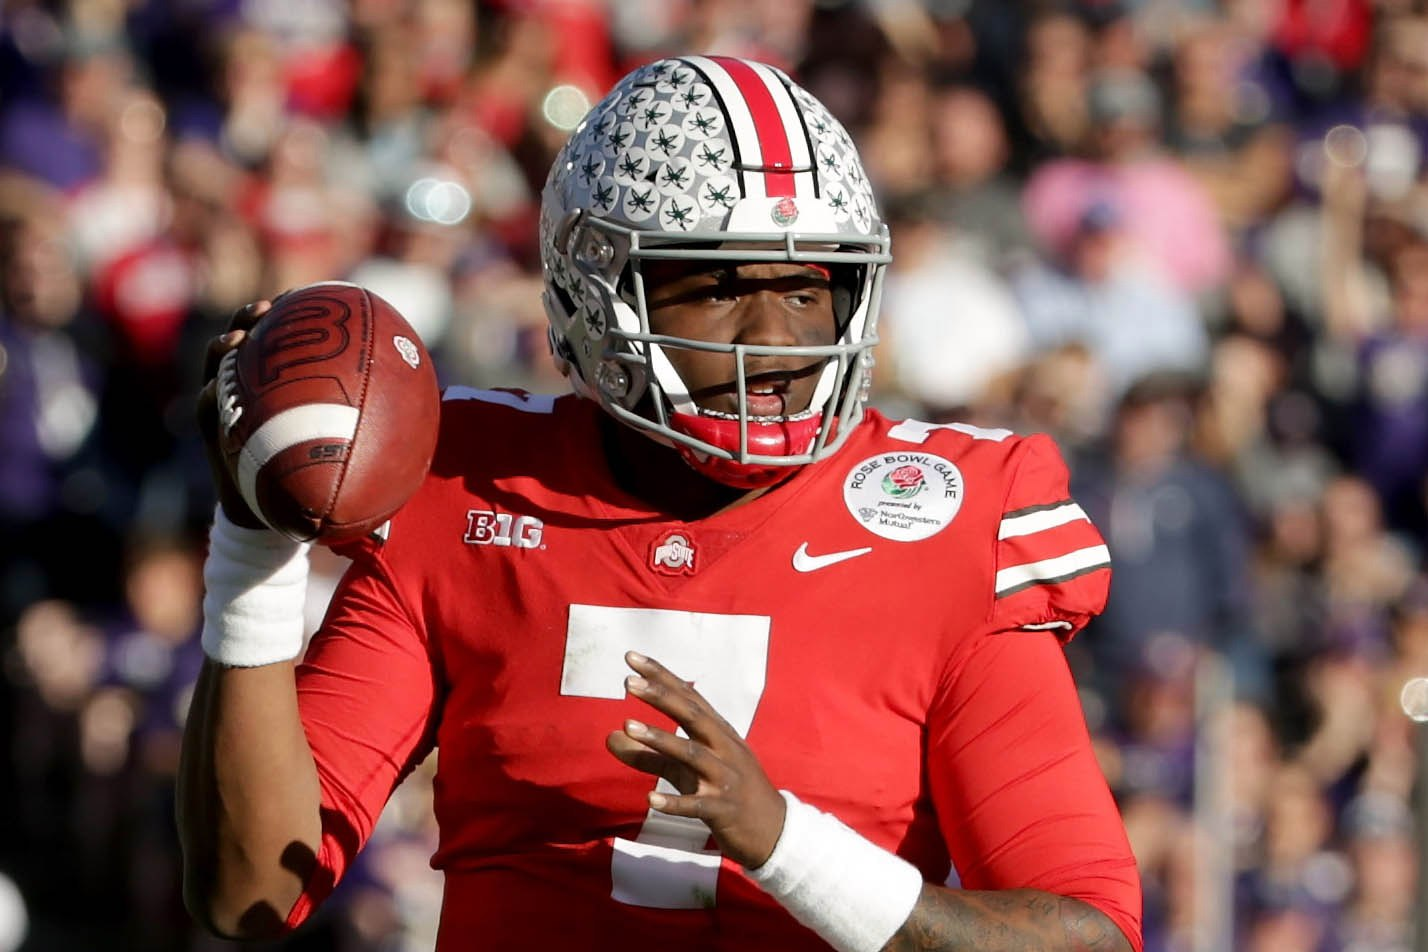 Dwayne Haskins enters draft, and Giants have QB decision to make